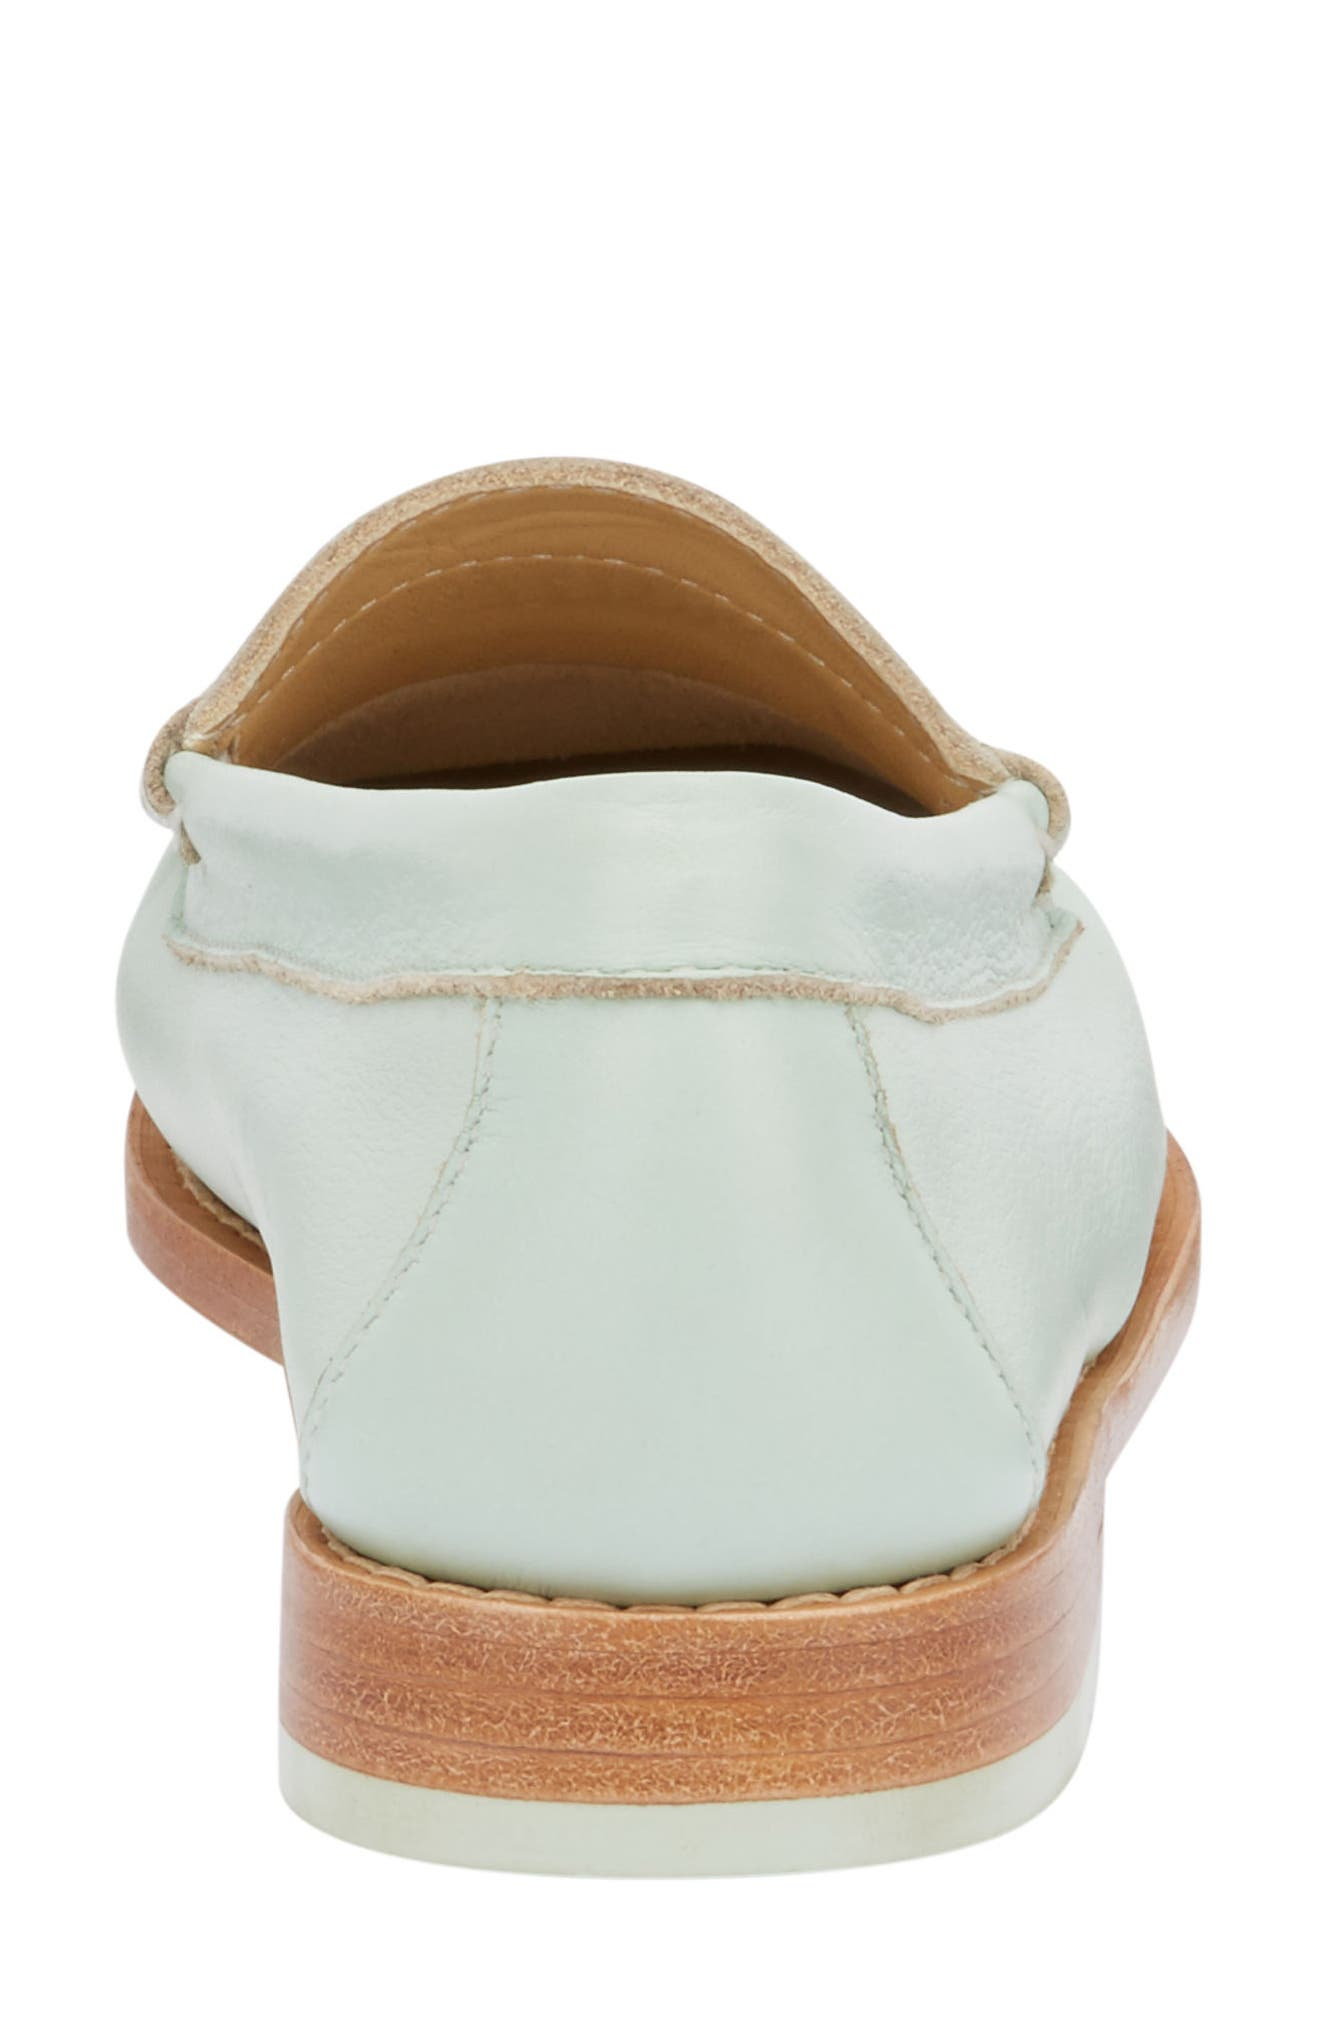 'Whitney' Loafer,                             Alternate thumbnail 7, color,                             MINT GREEN LEATHER